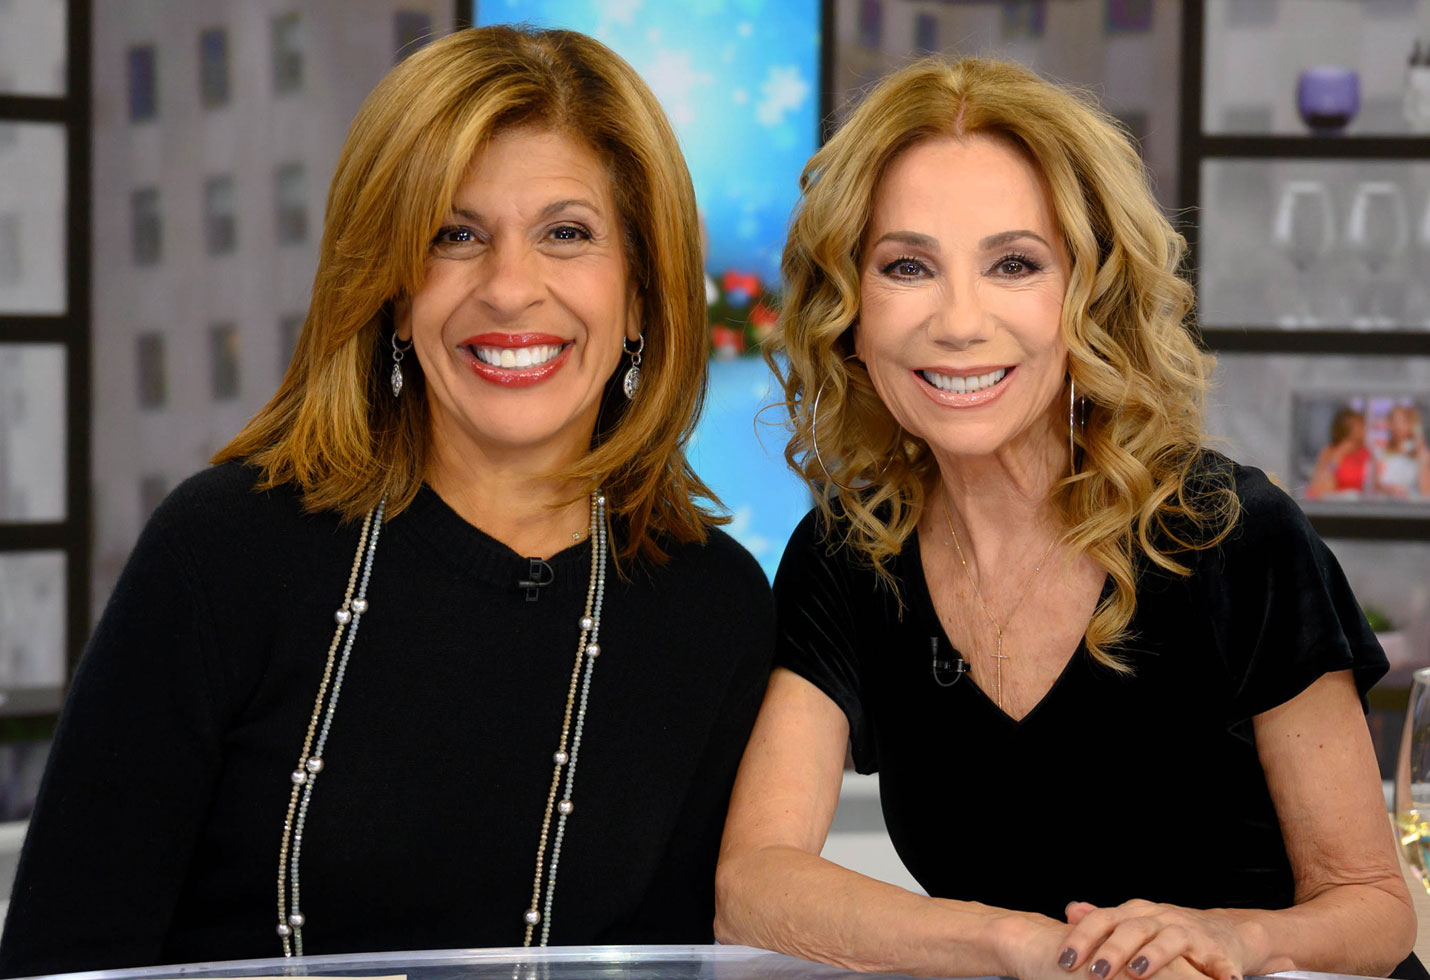 Today show kathie lee gifford replacement jenna bush hager hoda kotb